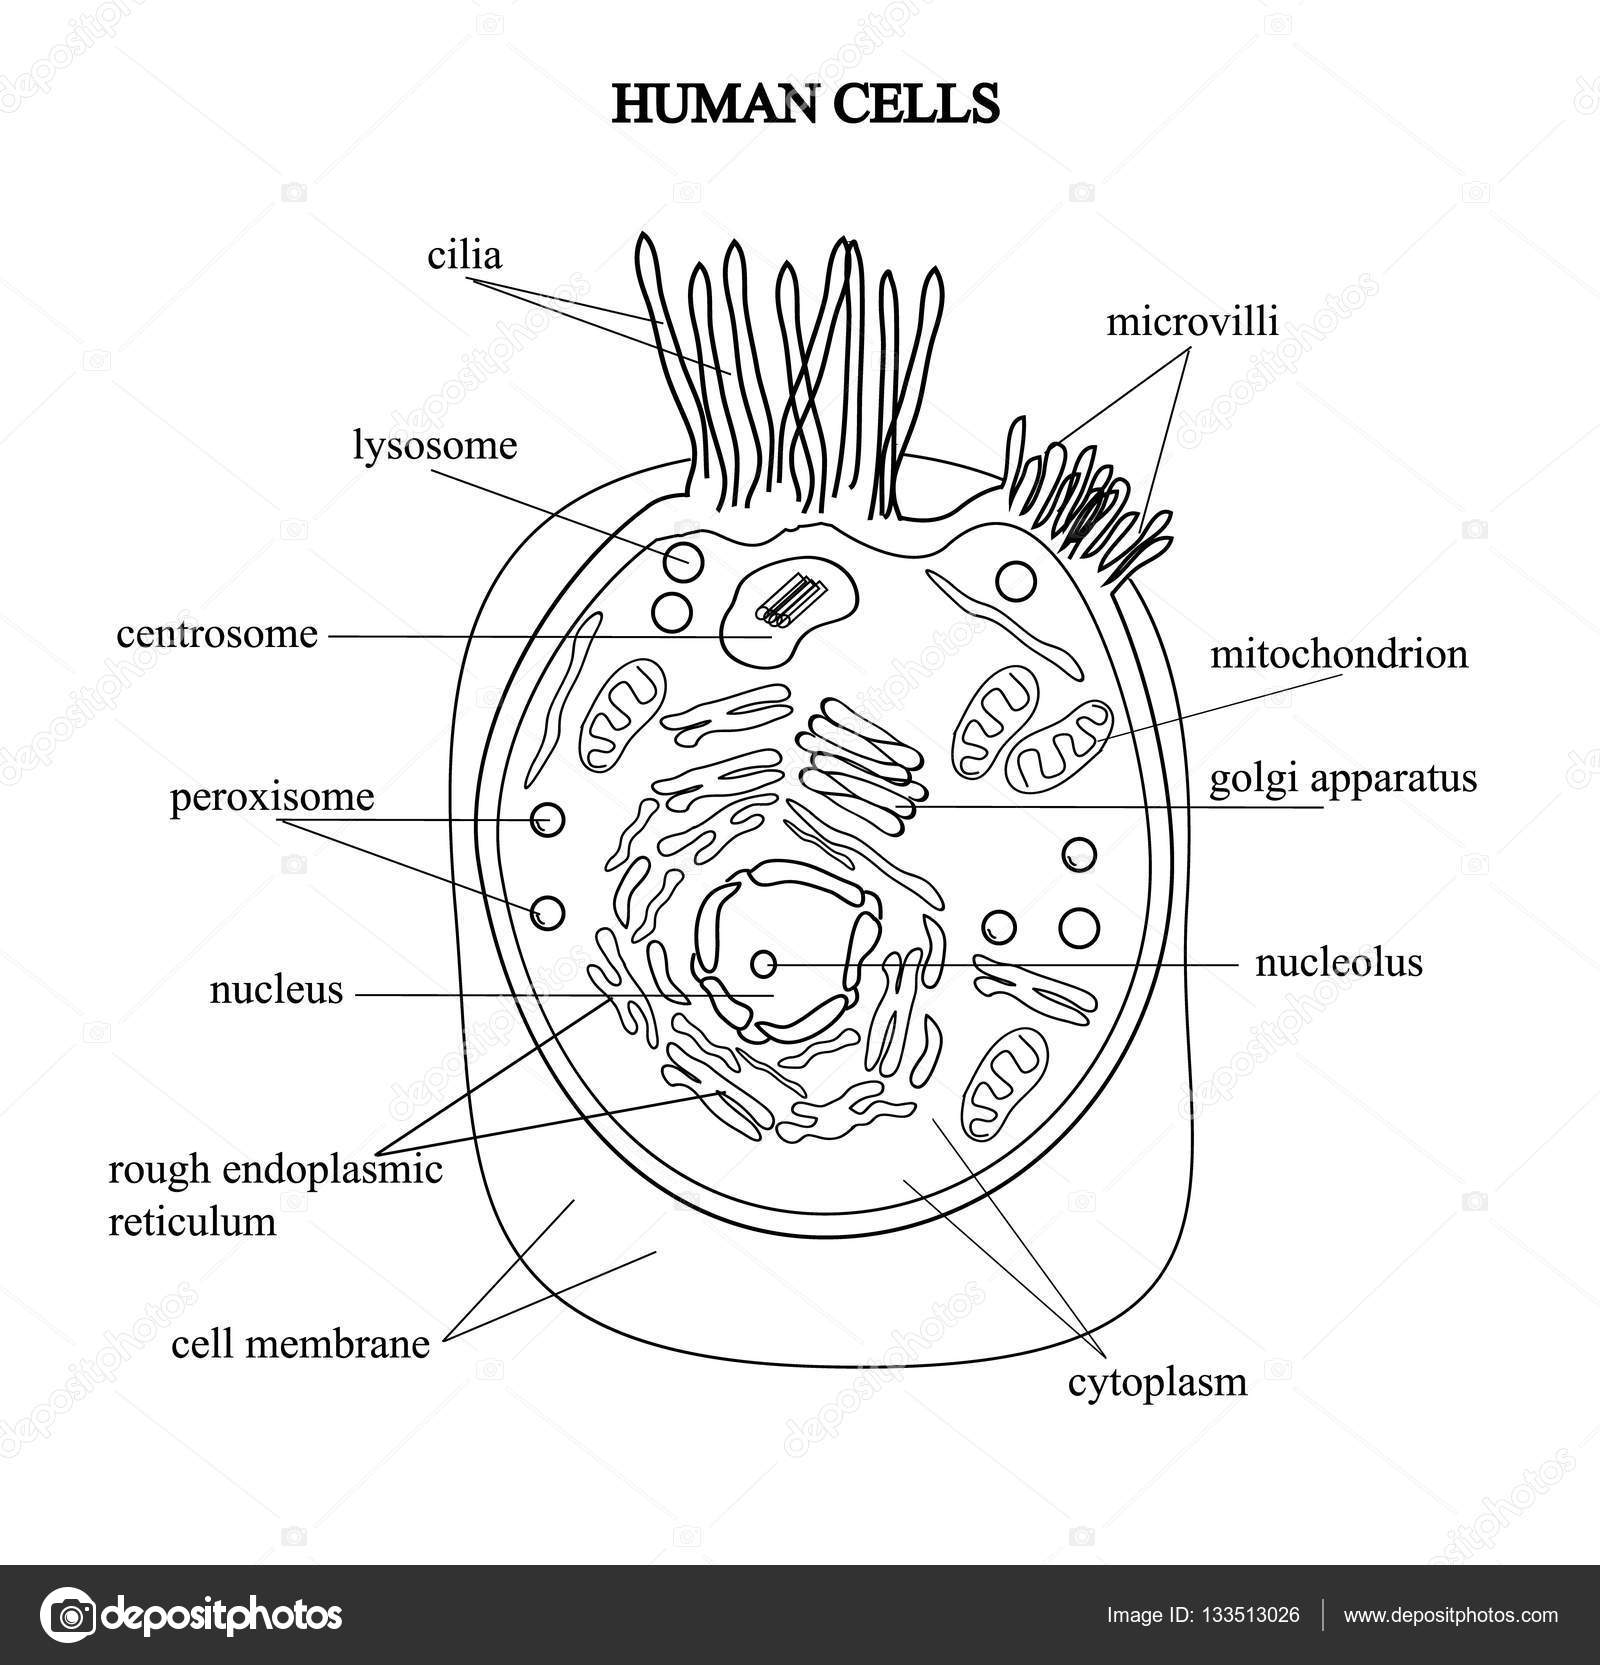 the structure of the human cells in a graphic image, cell components on a  colored